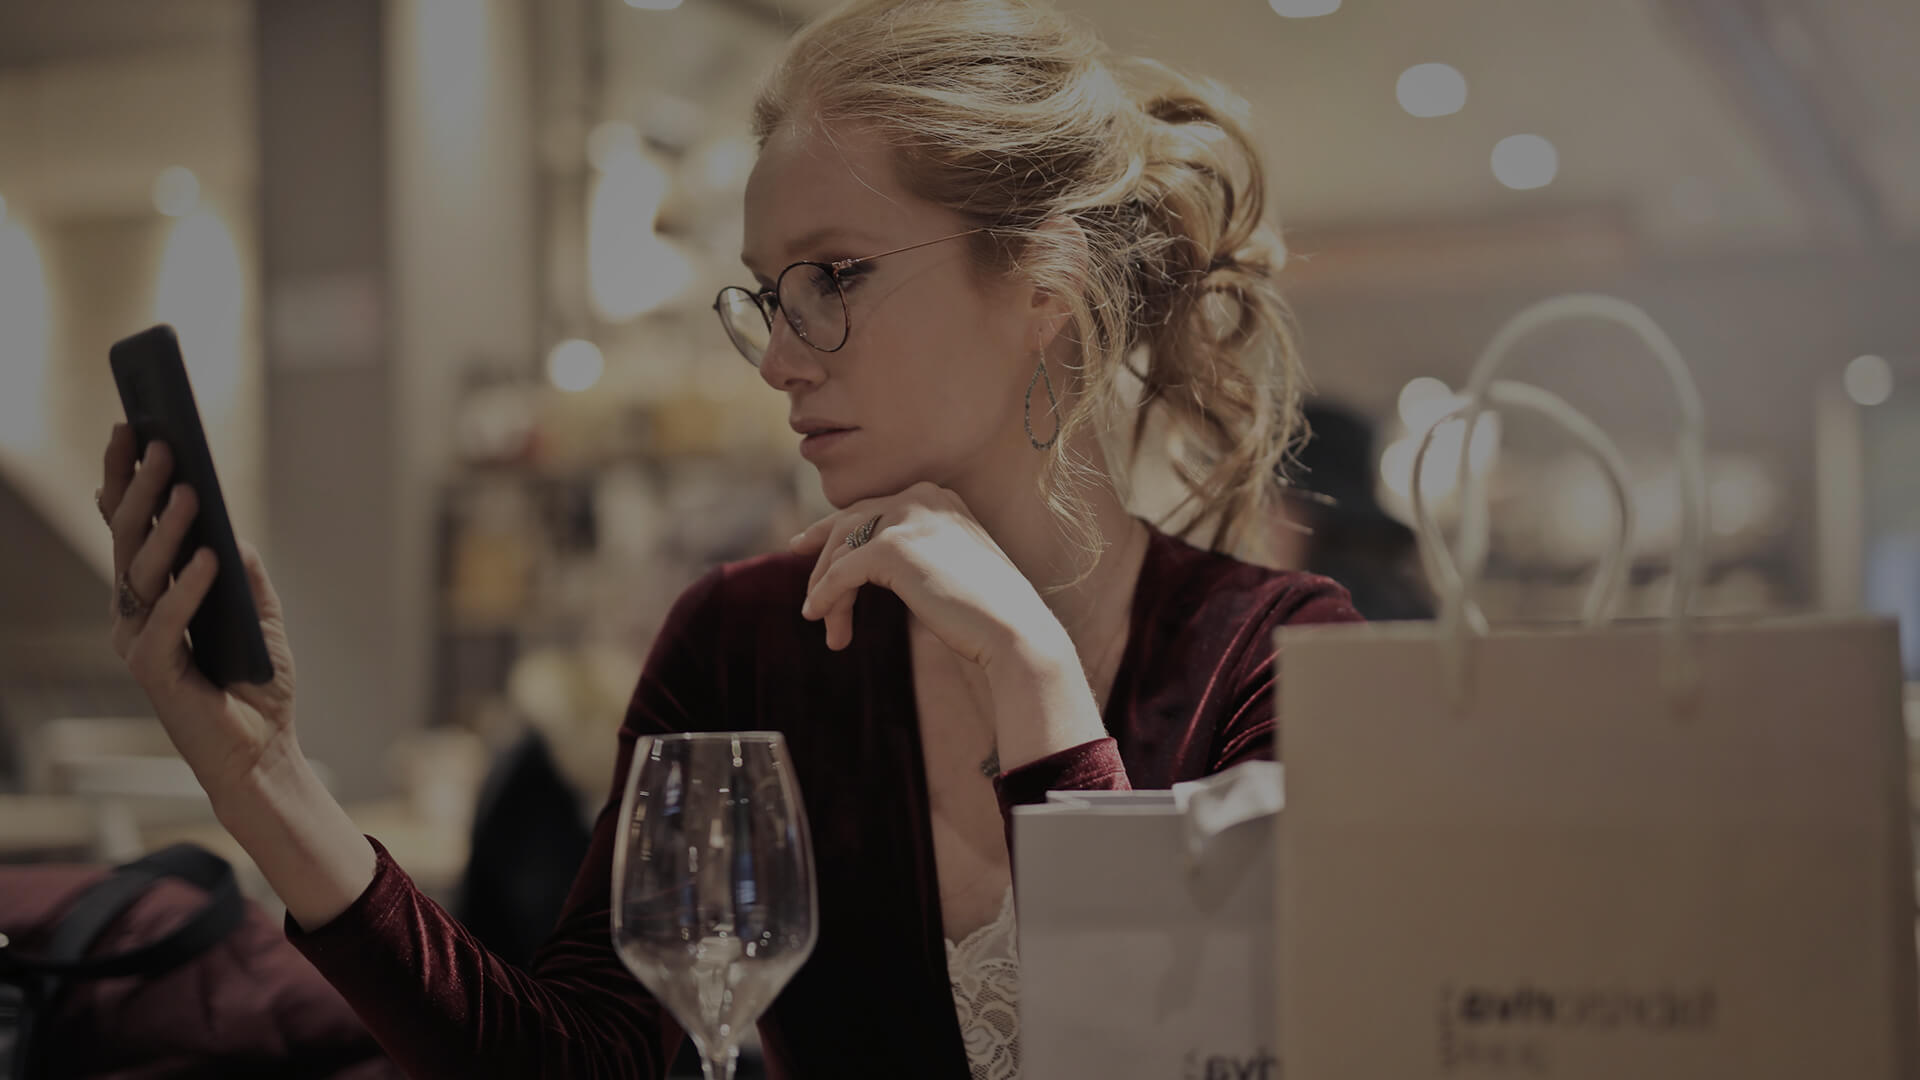 Woman looking at phone in restaurant